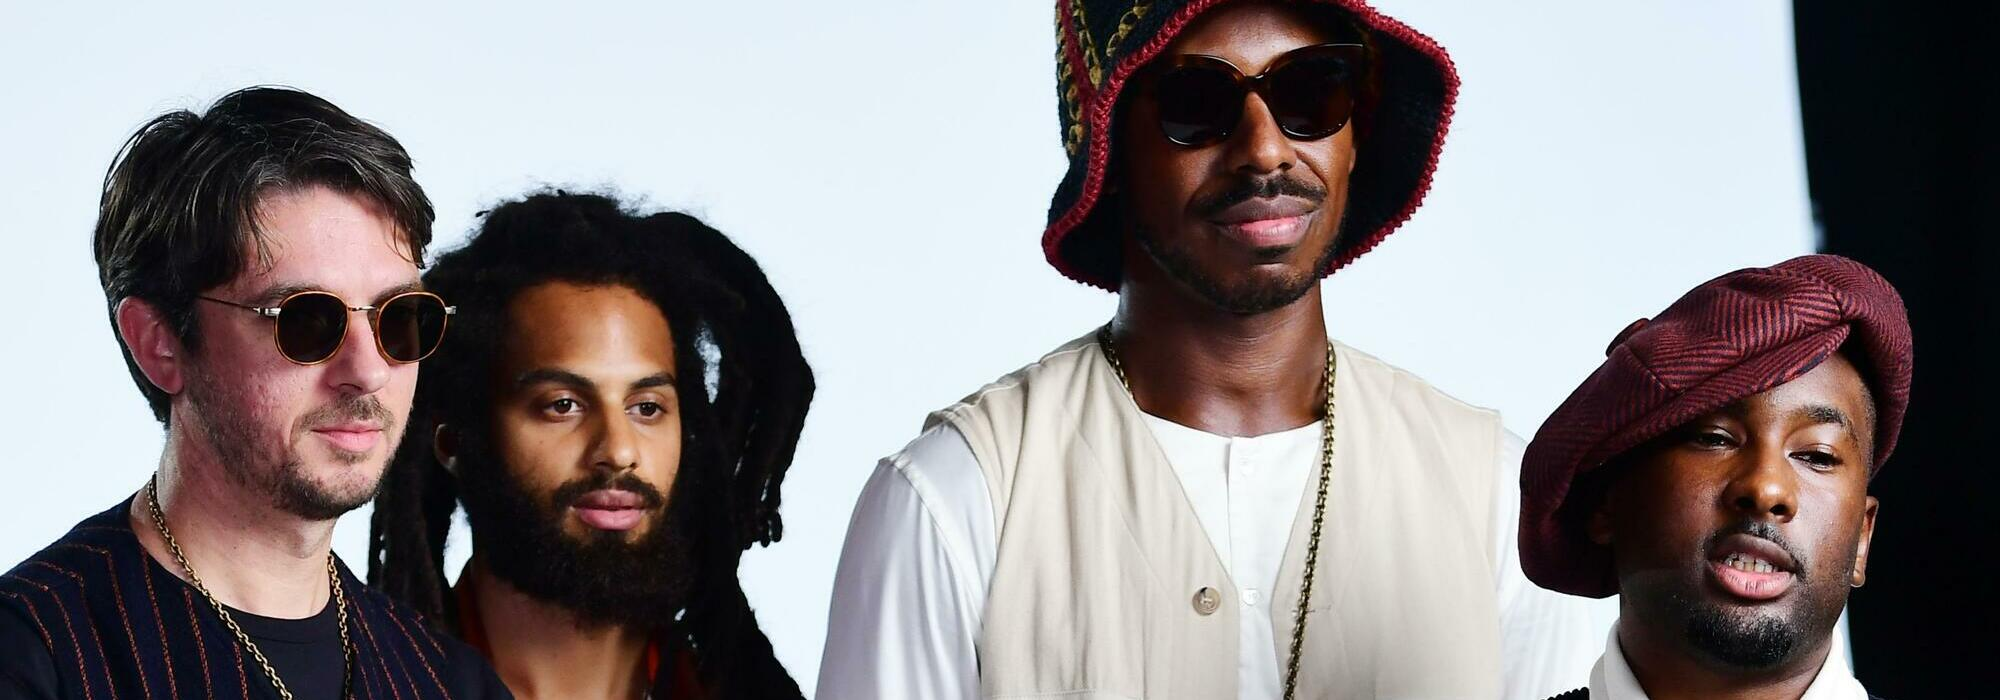 A Sons Of Kemet live event